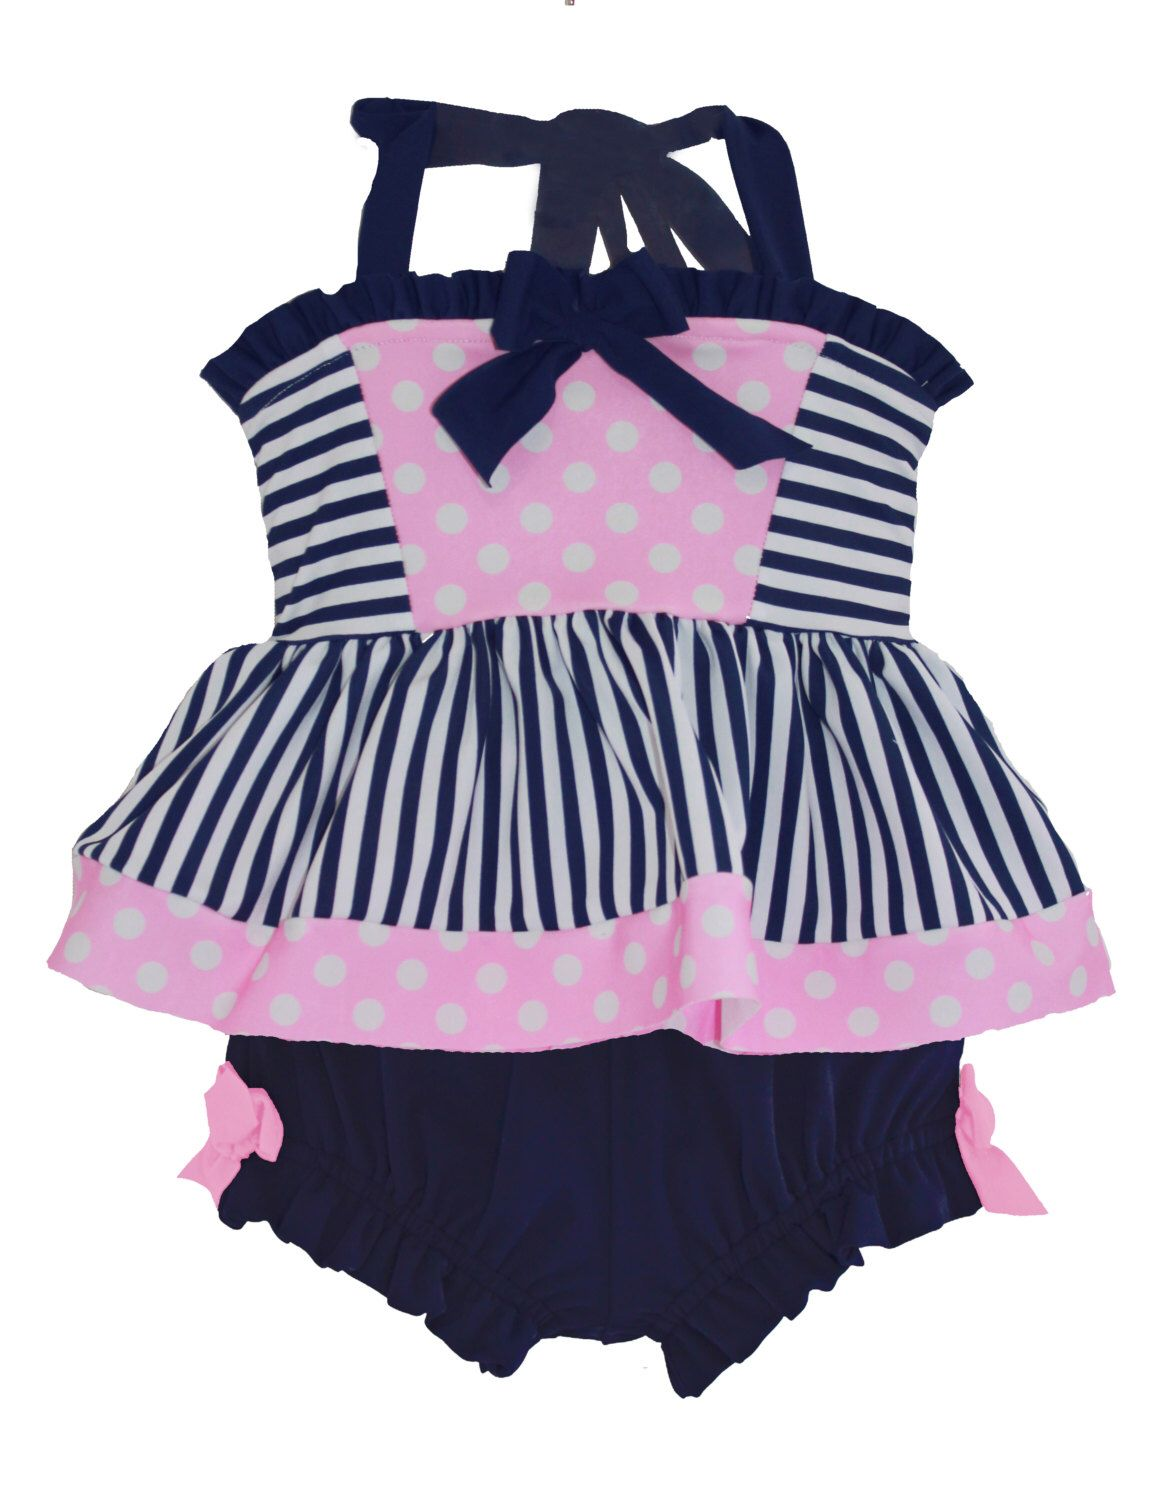 b079009d33 Eloise Tankini & Bloomers in Navy Stripe and Pink Polkadot: SS16  Collection (Size